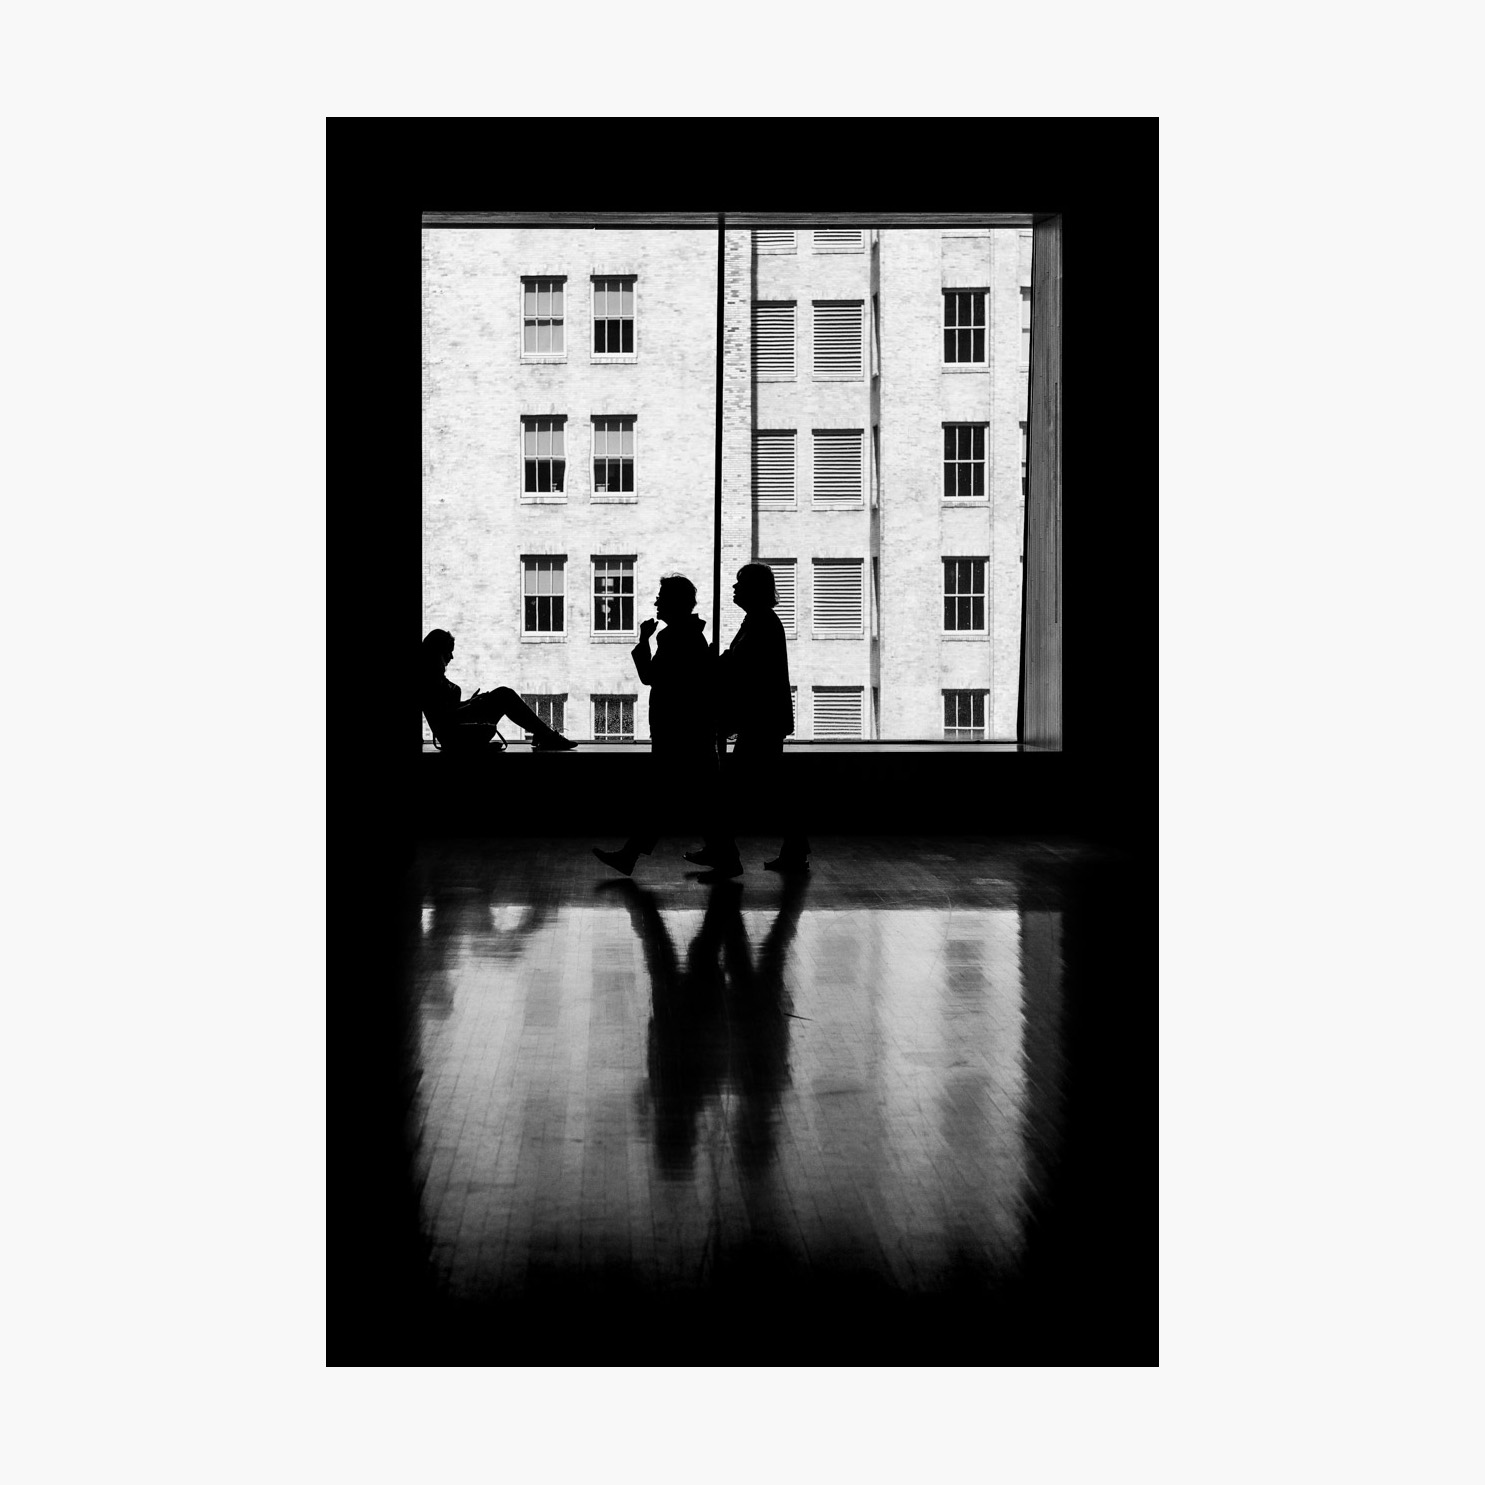 @harrywedmonds  San Francisco, California, USA September 2017  My creative background is in the London design and advertising industry, where I also work as a design and art director. The graphic motifs in my photography are no doubt a direct result of my experience; I'm often drawn to silhouettes, shadows, and and striking architectural spaces.  I took this photograph in an art gallery in San Francisco, where the vast windows became a canvas upon which to capture passing visitors.  Photographed with the  FujiFilm X-T2  and  XF56 F1.2 .